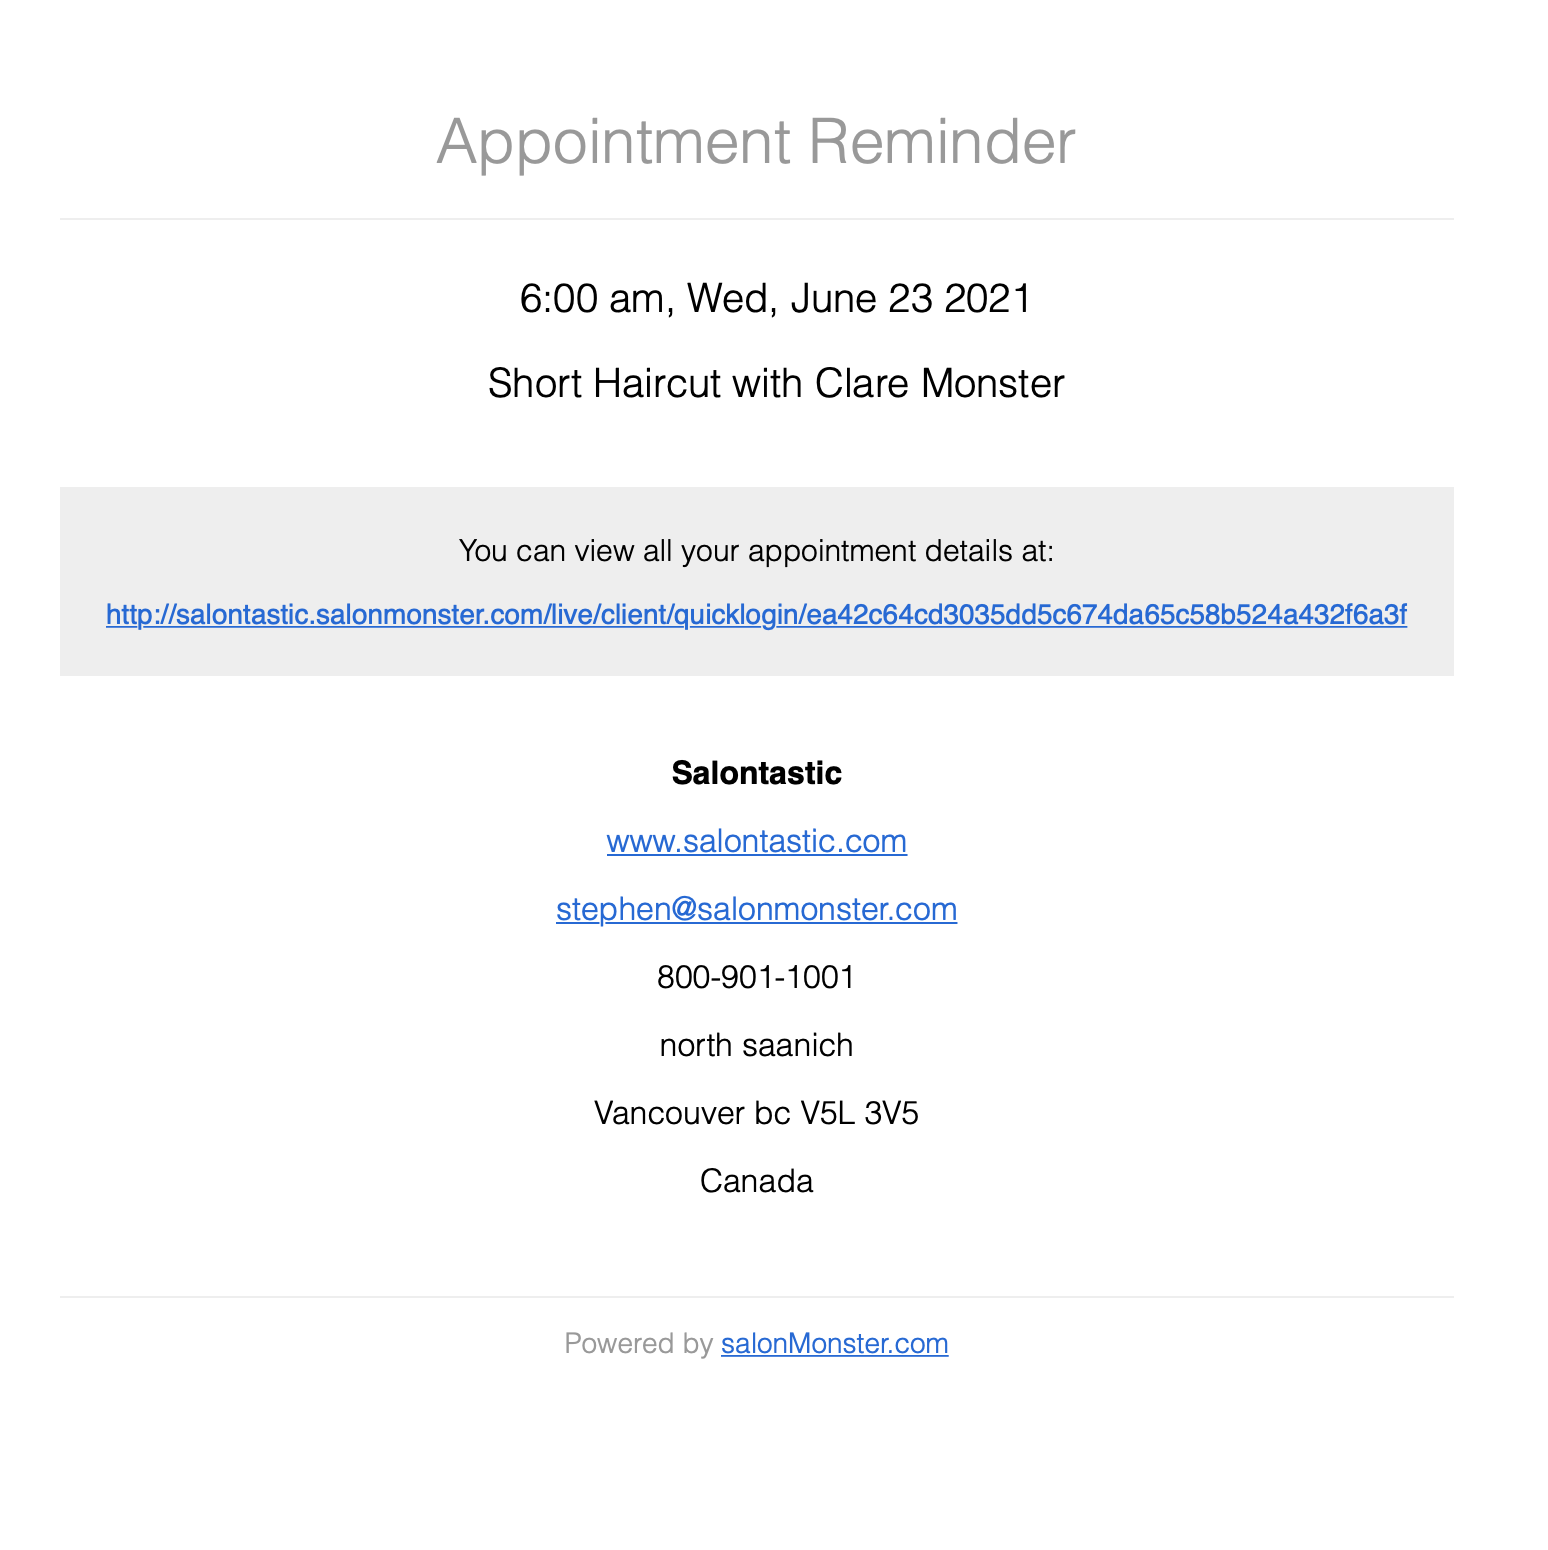 Automatic appointment reminder email